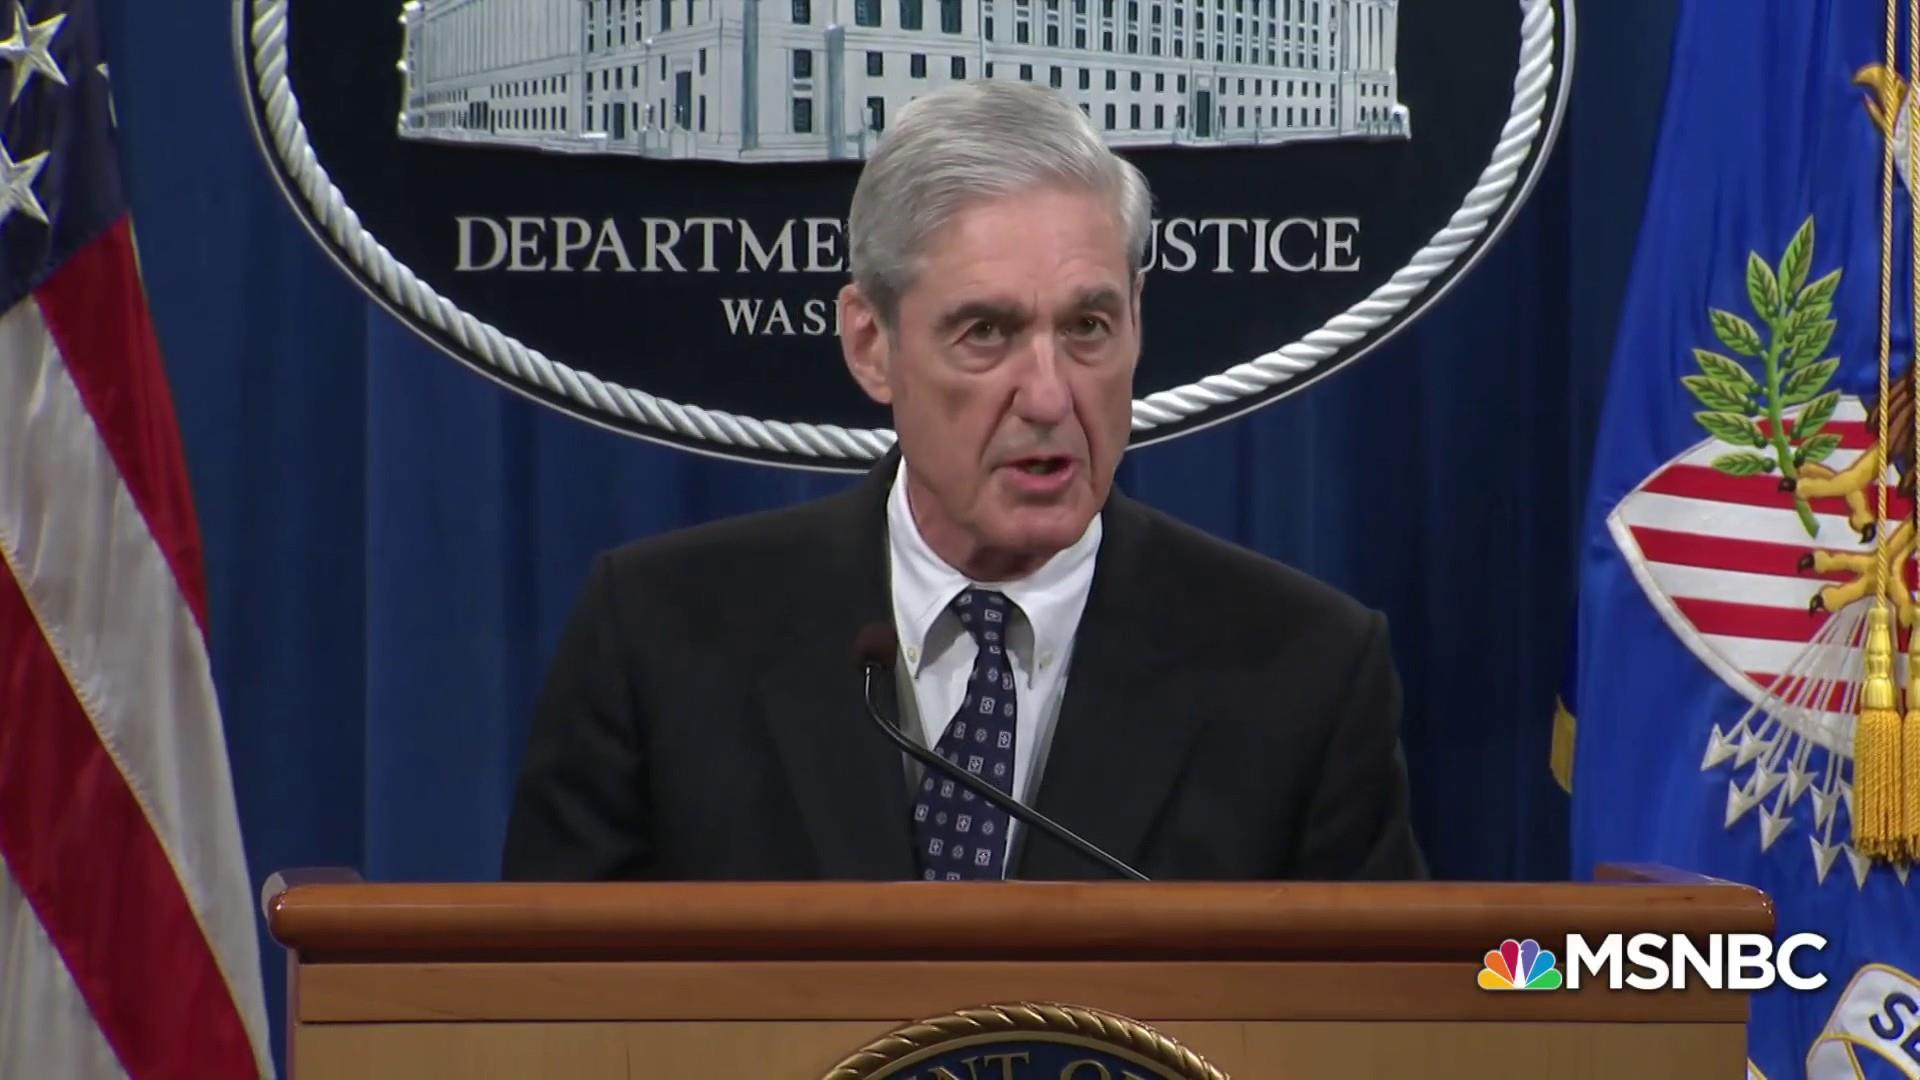 Impact of Mueller statement highlights need for public testimony